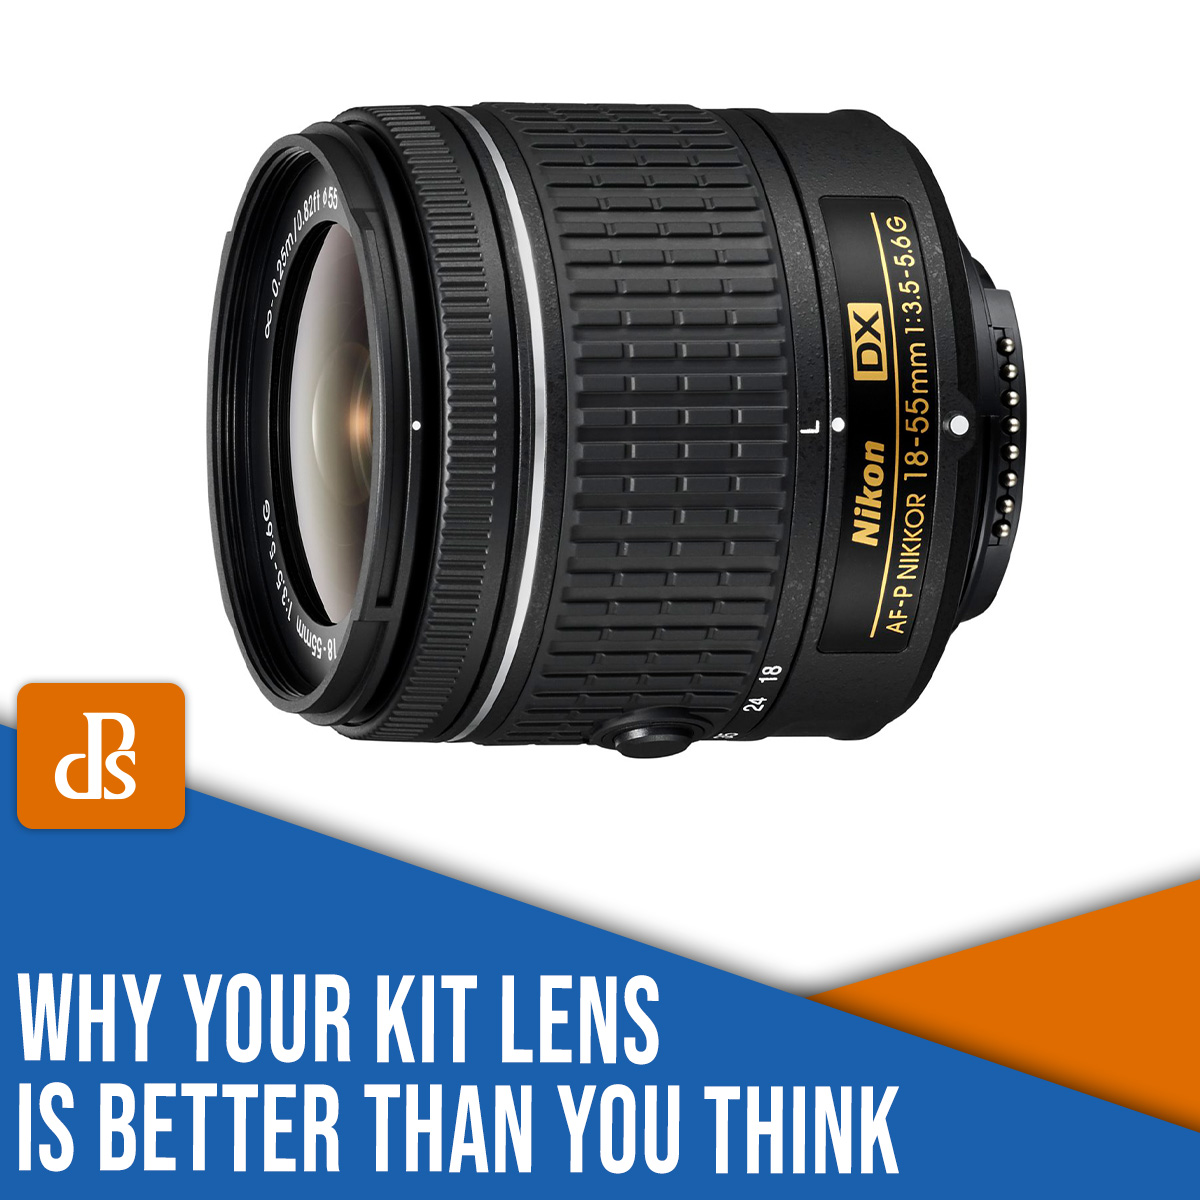 why your kit lens is better than you think